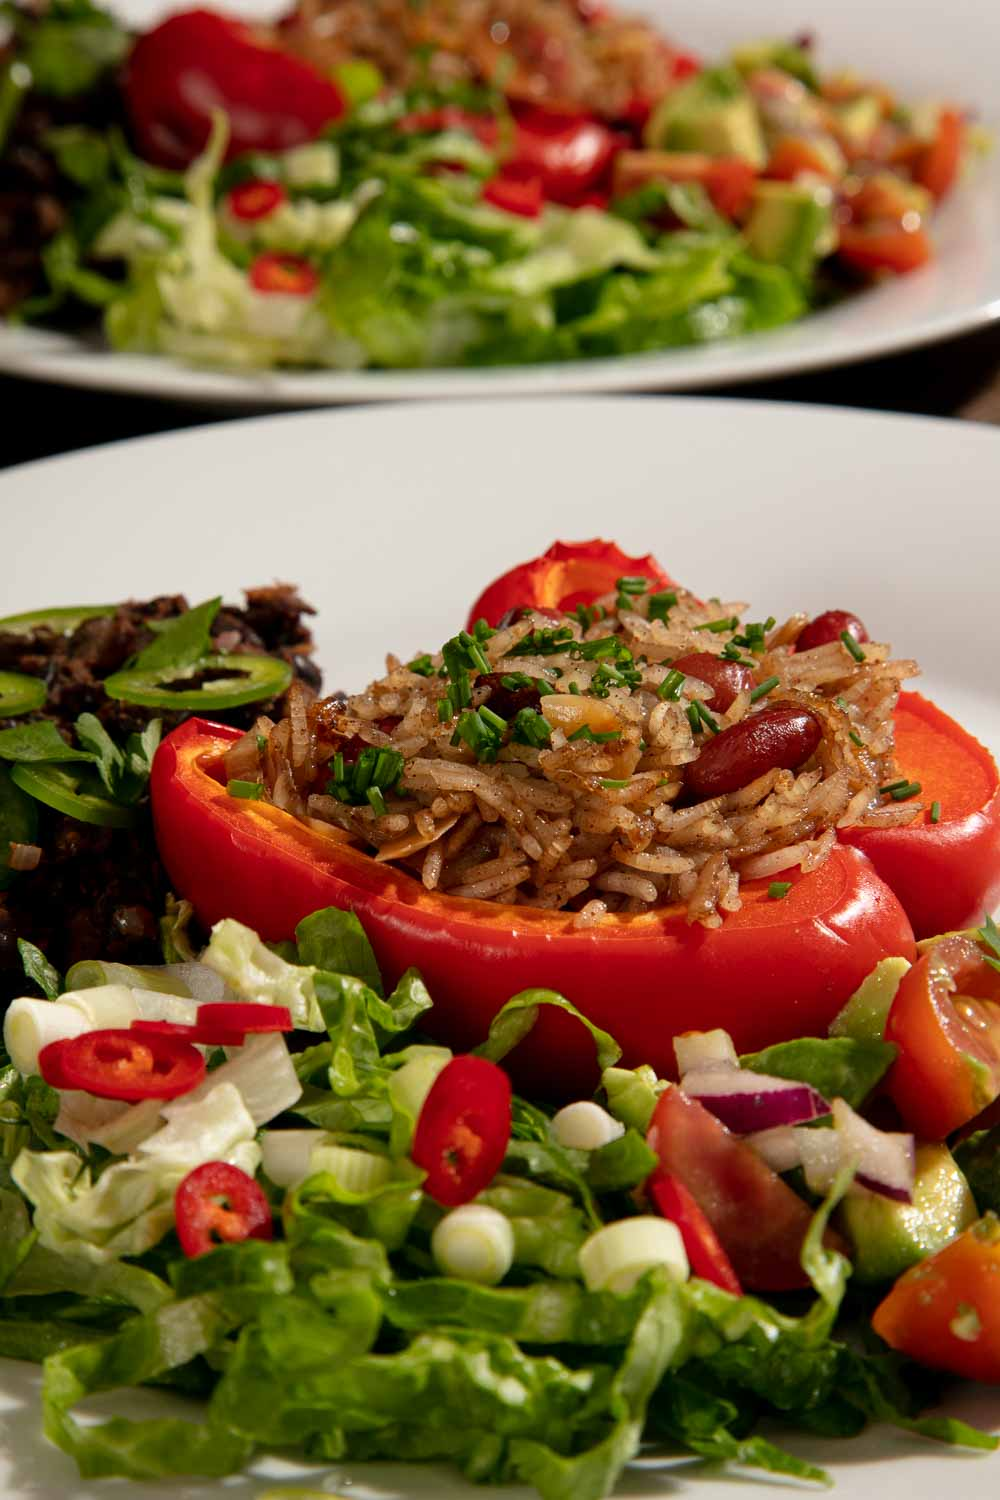 Vegan Stuffed Peppers filled with spiced rice and served with salad.